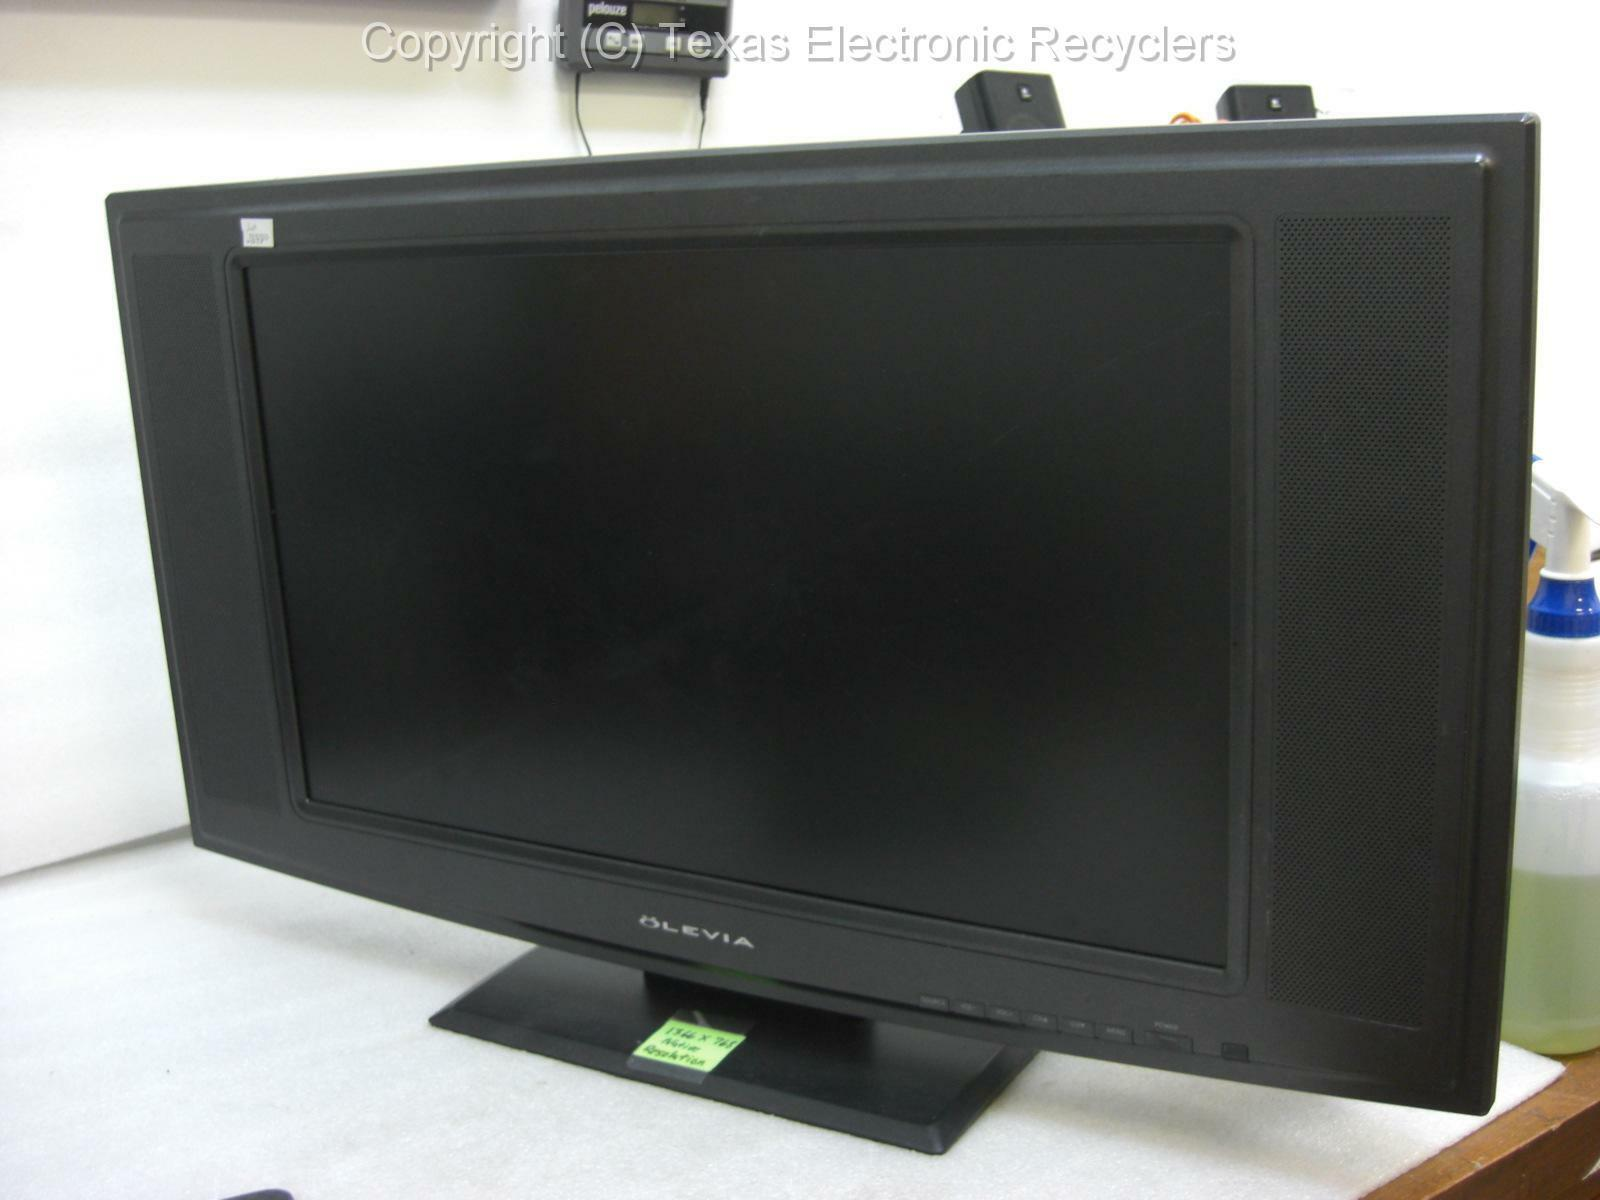 "Syntax Olevia lt27hvx 27"" LCD Multi-Media Display"